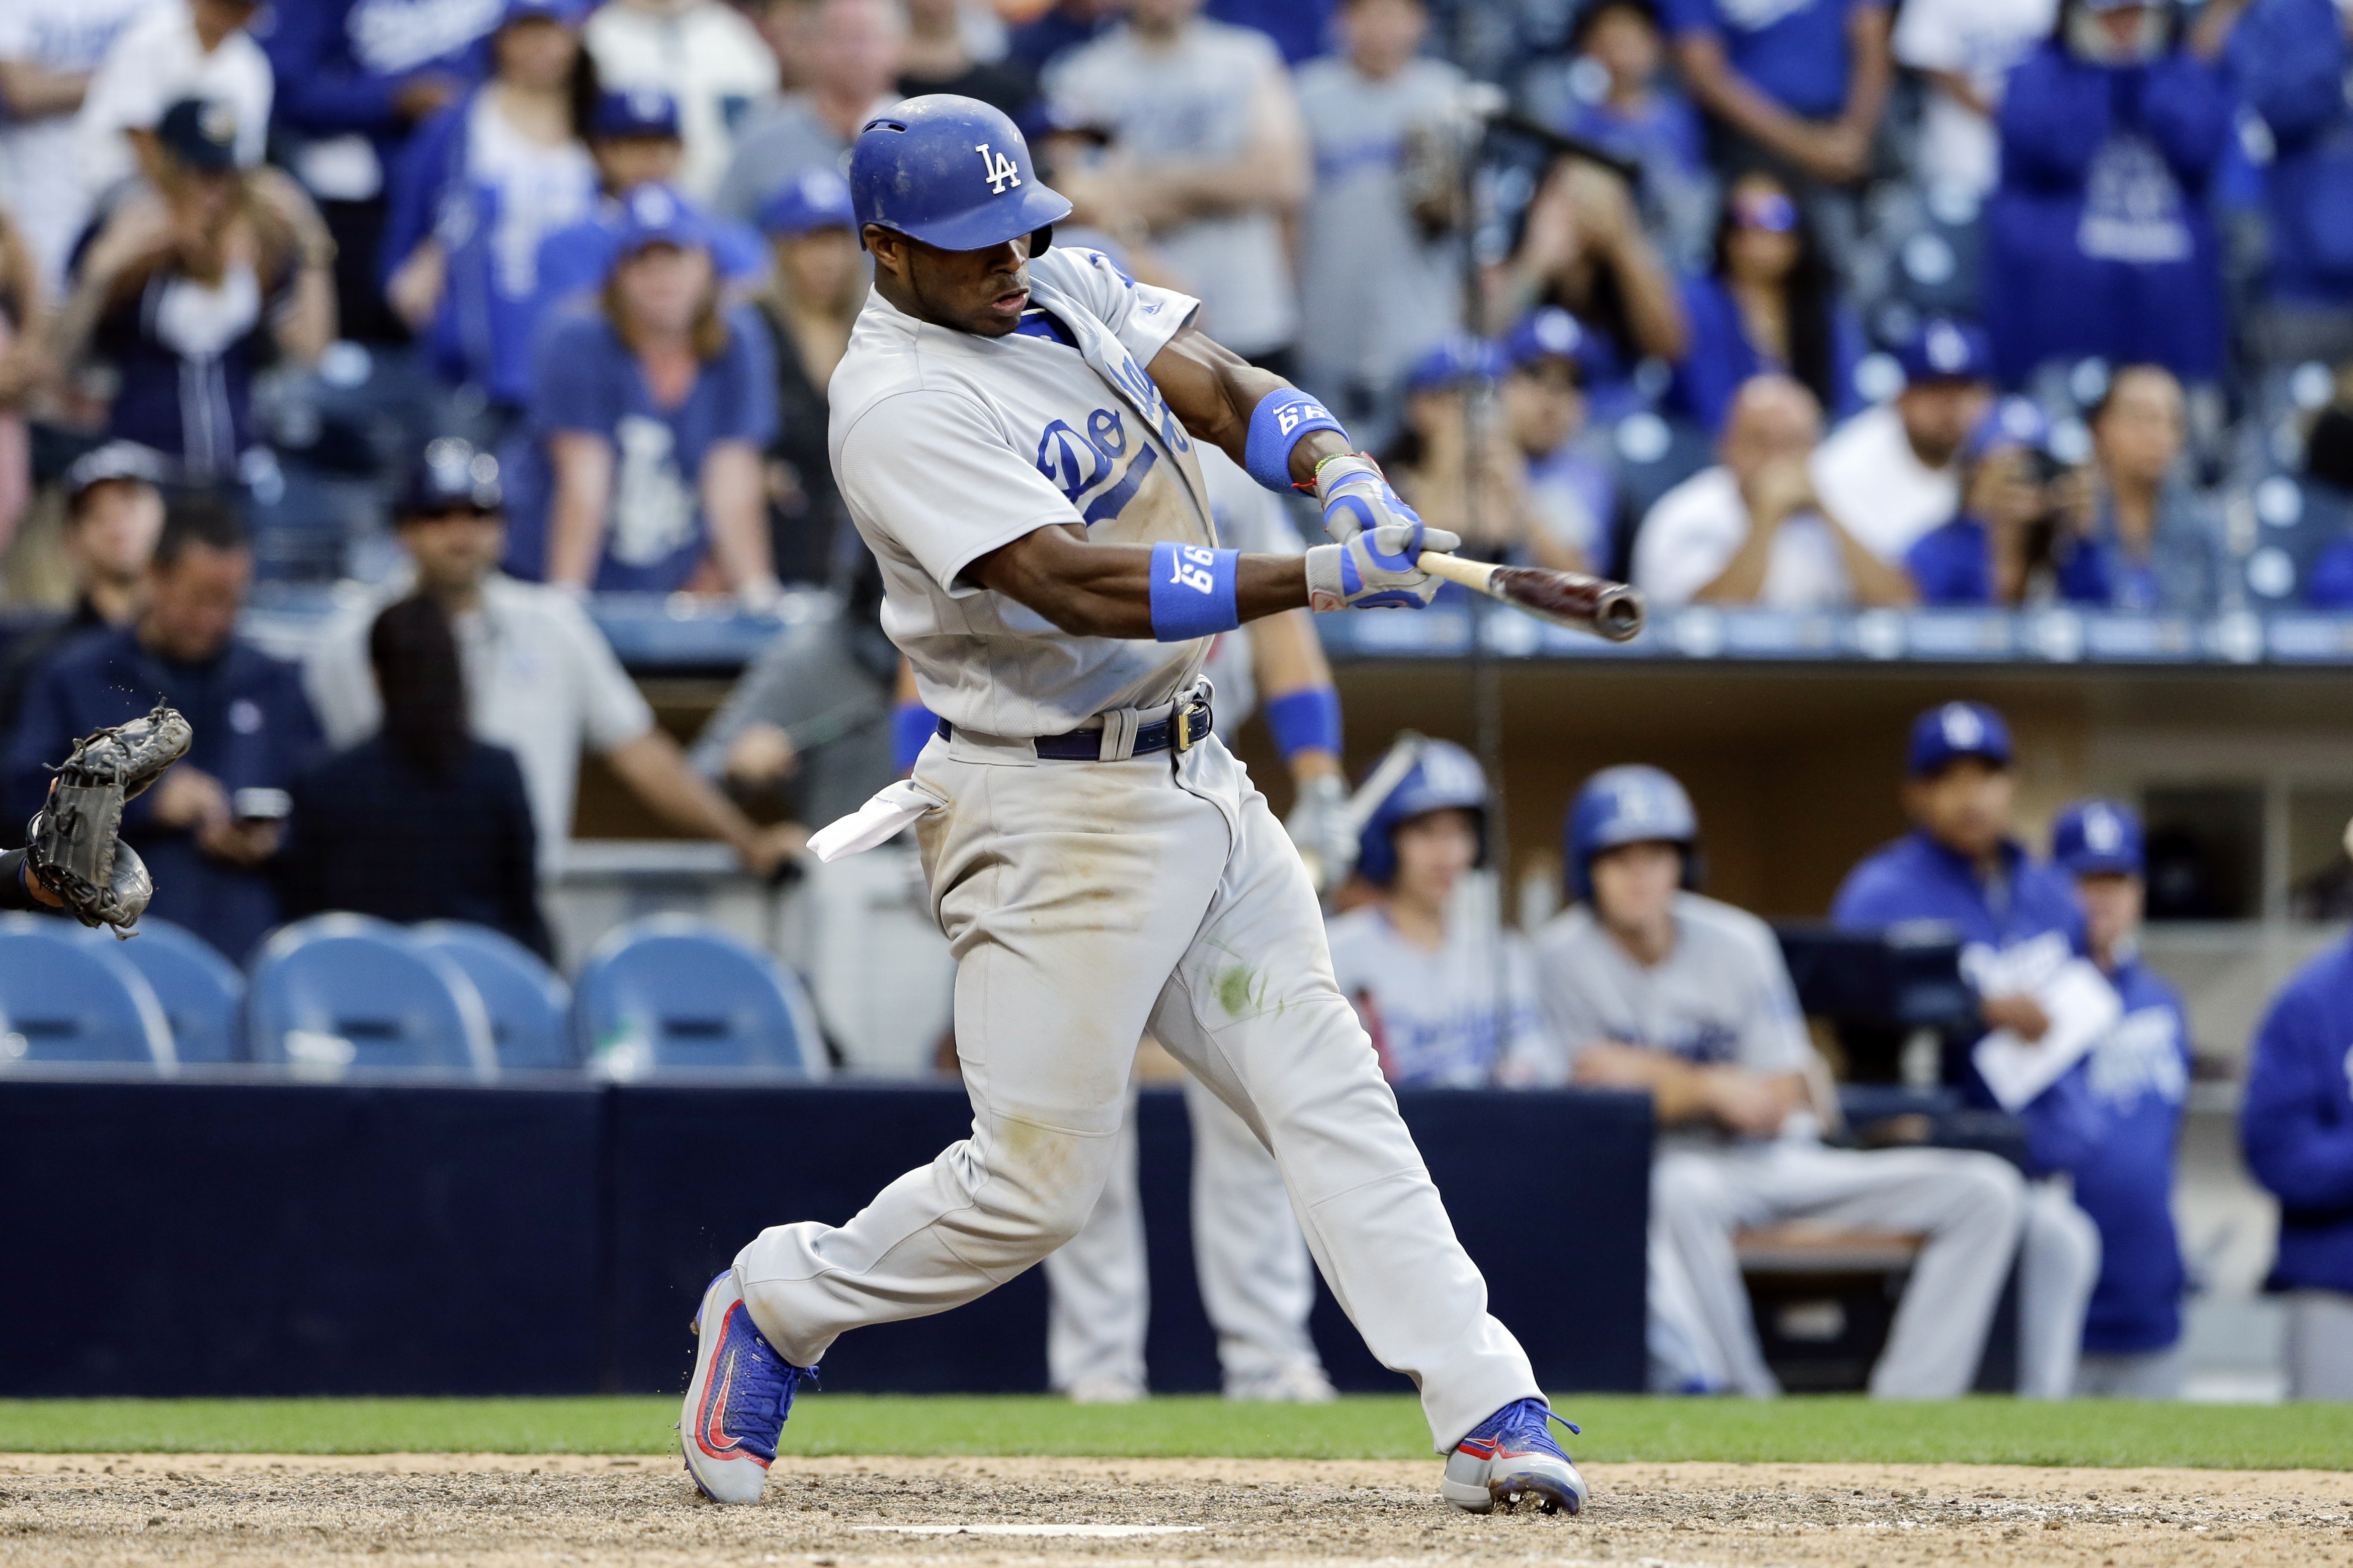 Los Angeles Dodgers' Yasiel Puig hits a two-run single during the seventeenth inning of a baseball game against the San Diego Padres, Sunday, May 22, 2016, in San Diego. (AP Photo/Gregory Bull)